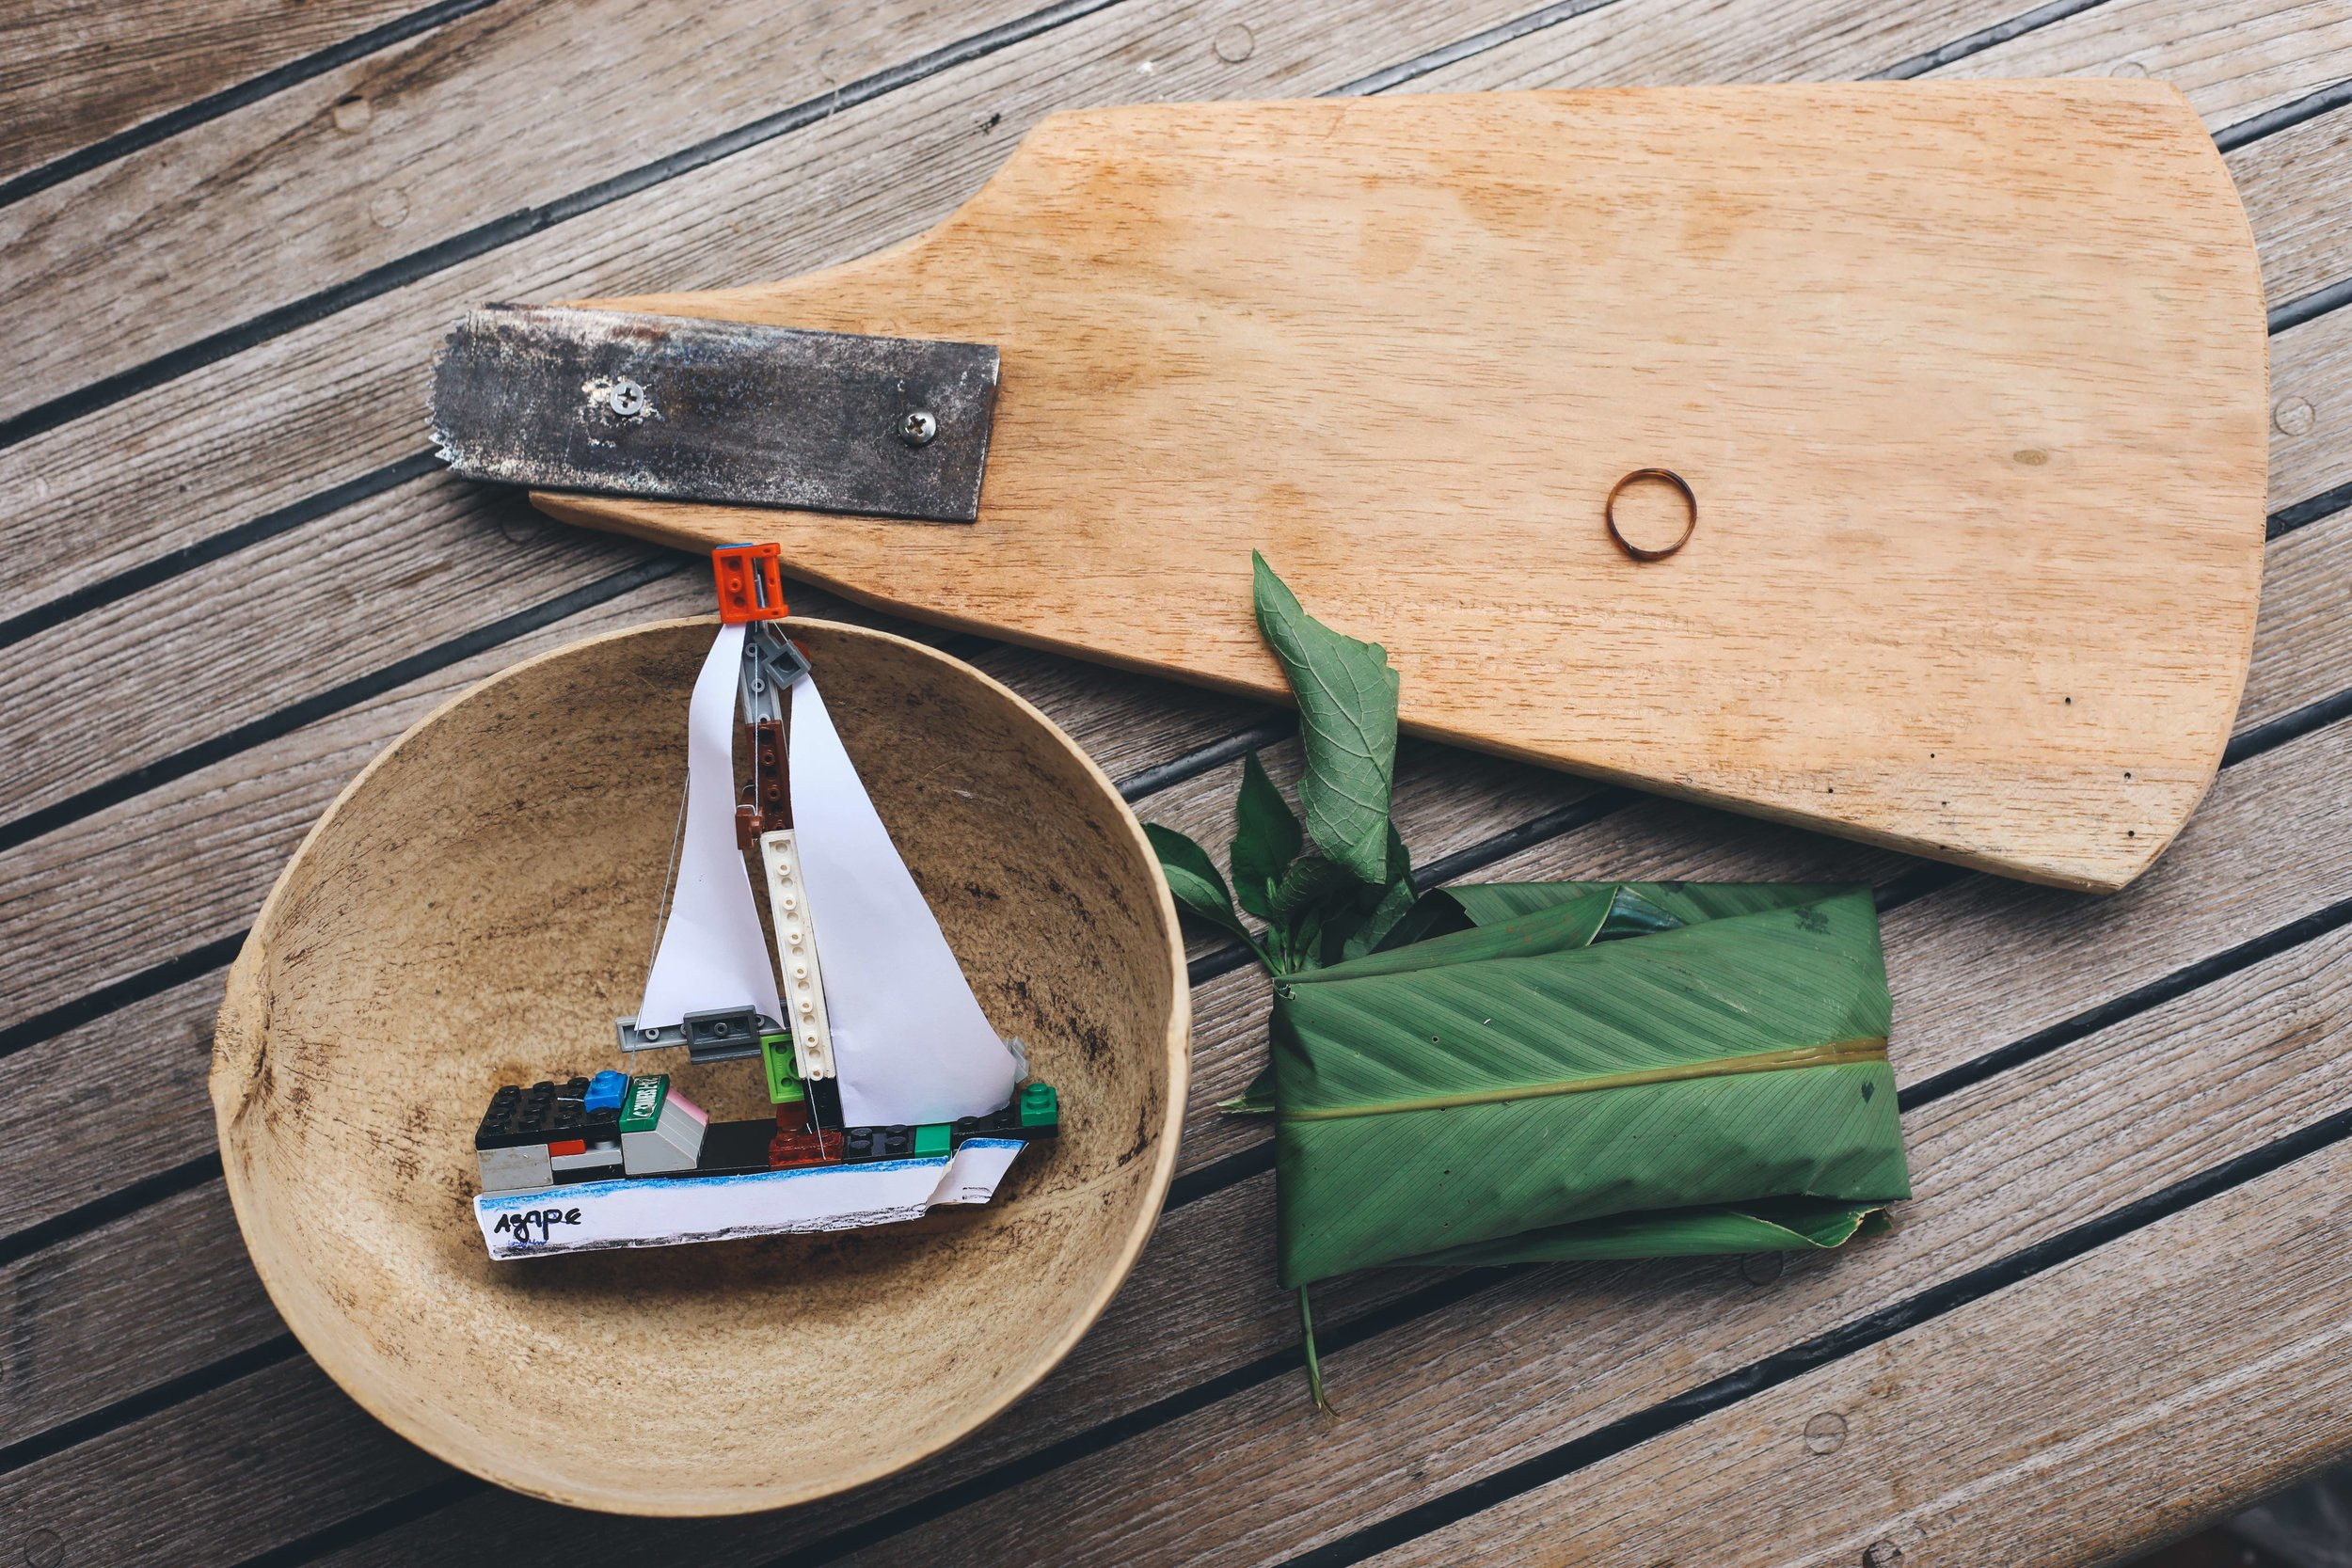 Gifts from Domingo and his family: a coconut scrapper, fresh herbs, a bowl made from a gourd they grow, a lego Agape and a ring made from a turtle shell.